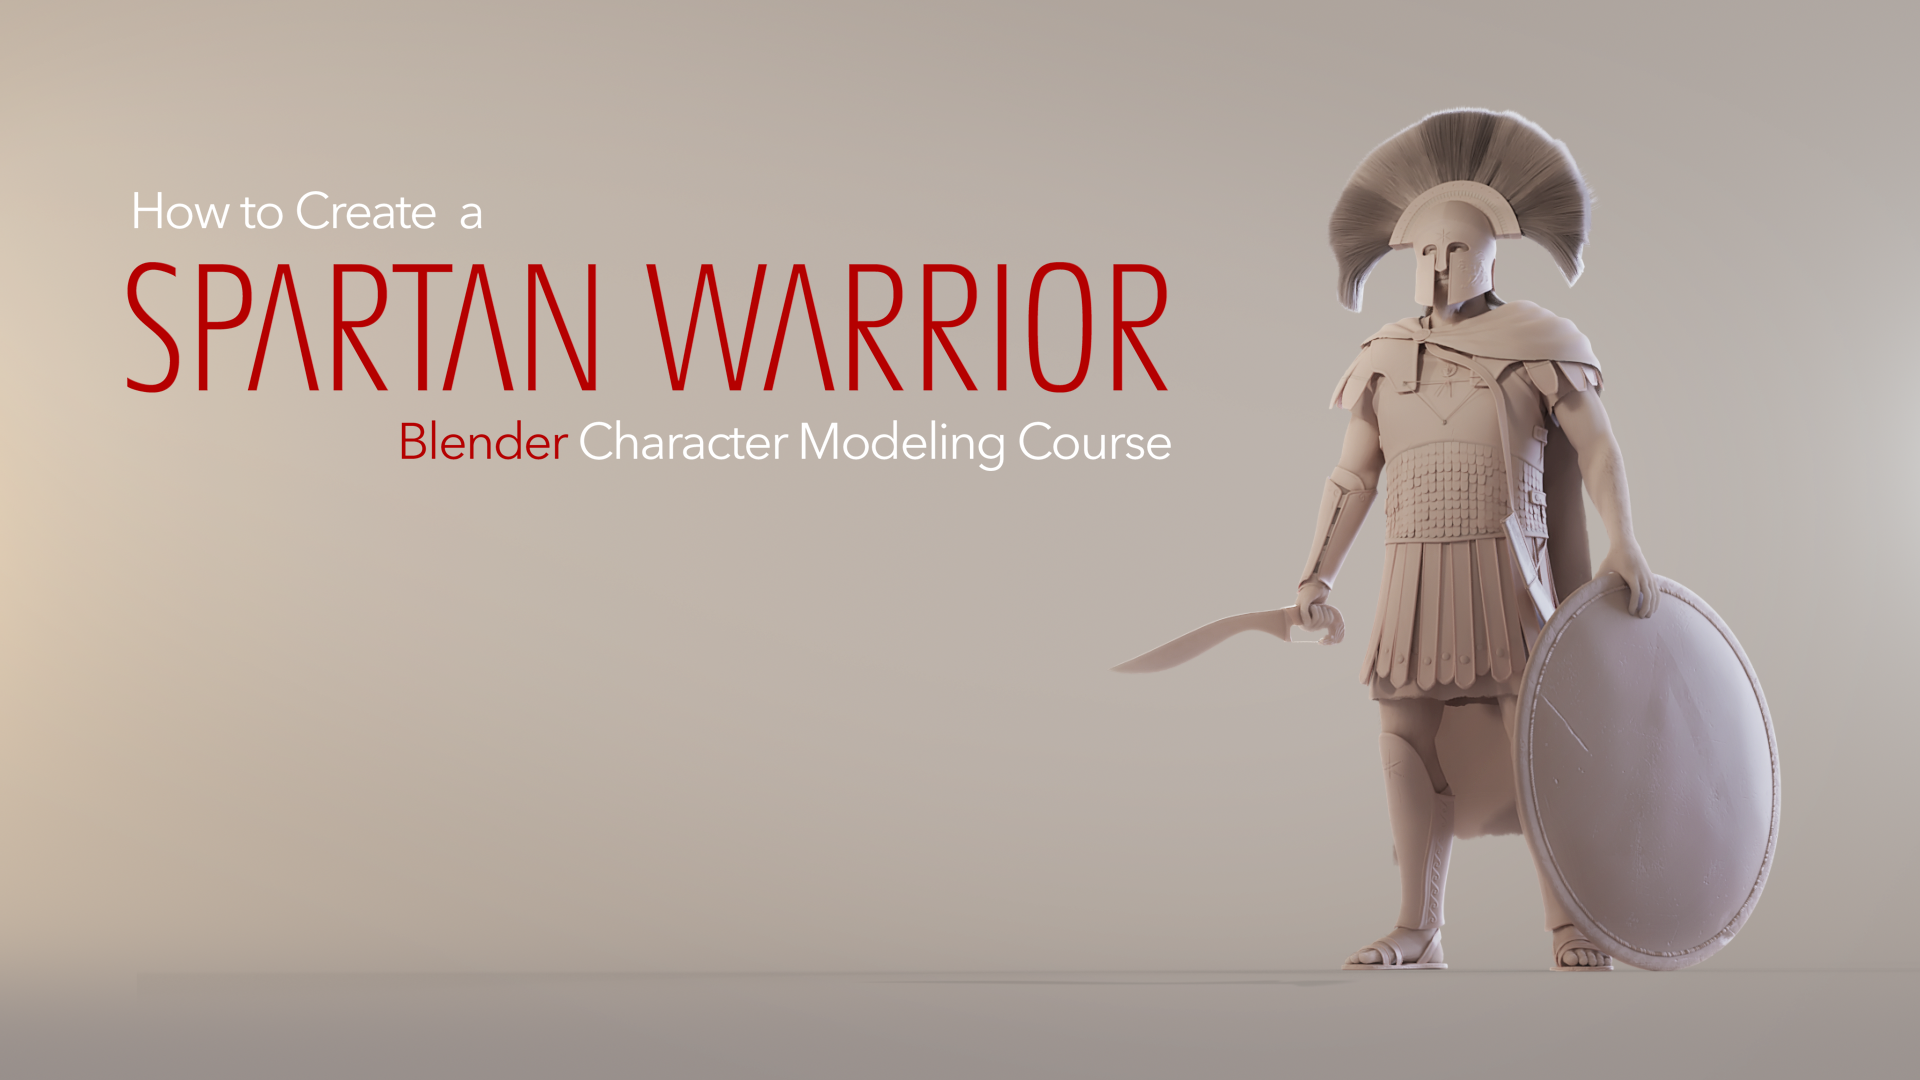 An epic course showing you how to create your own warrior character in Blender. 37 + lessons, 3 hours of videos in total. Plus bonus content. And the obligatory historical fun facts.  Get here .